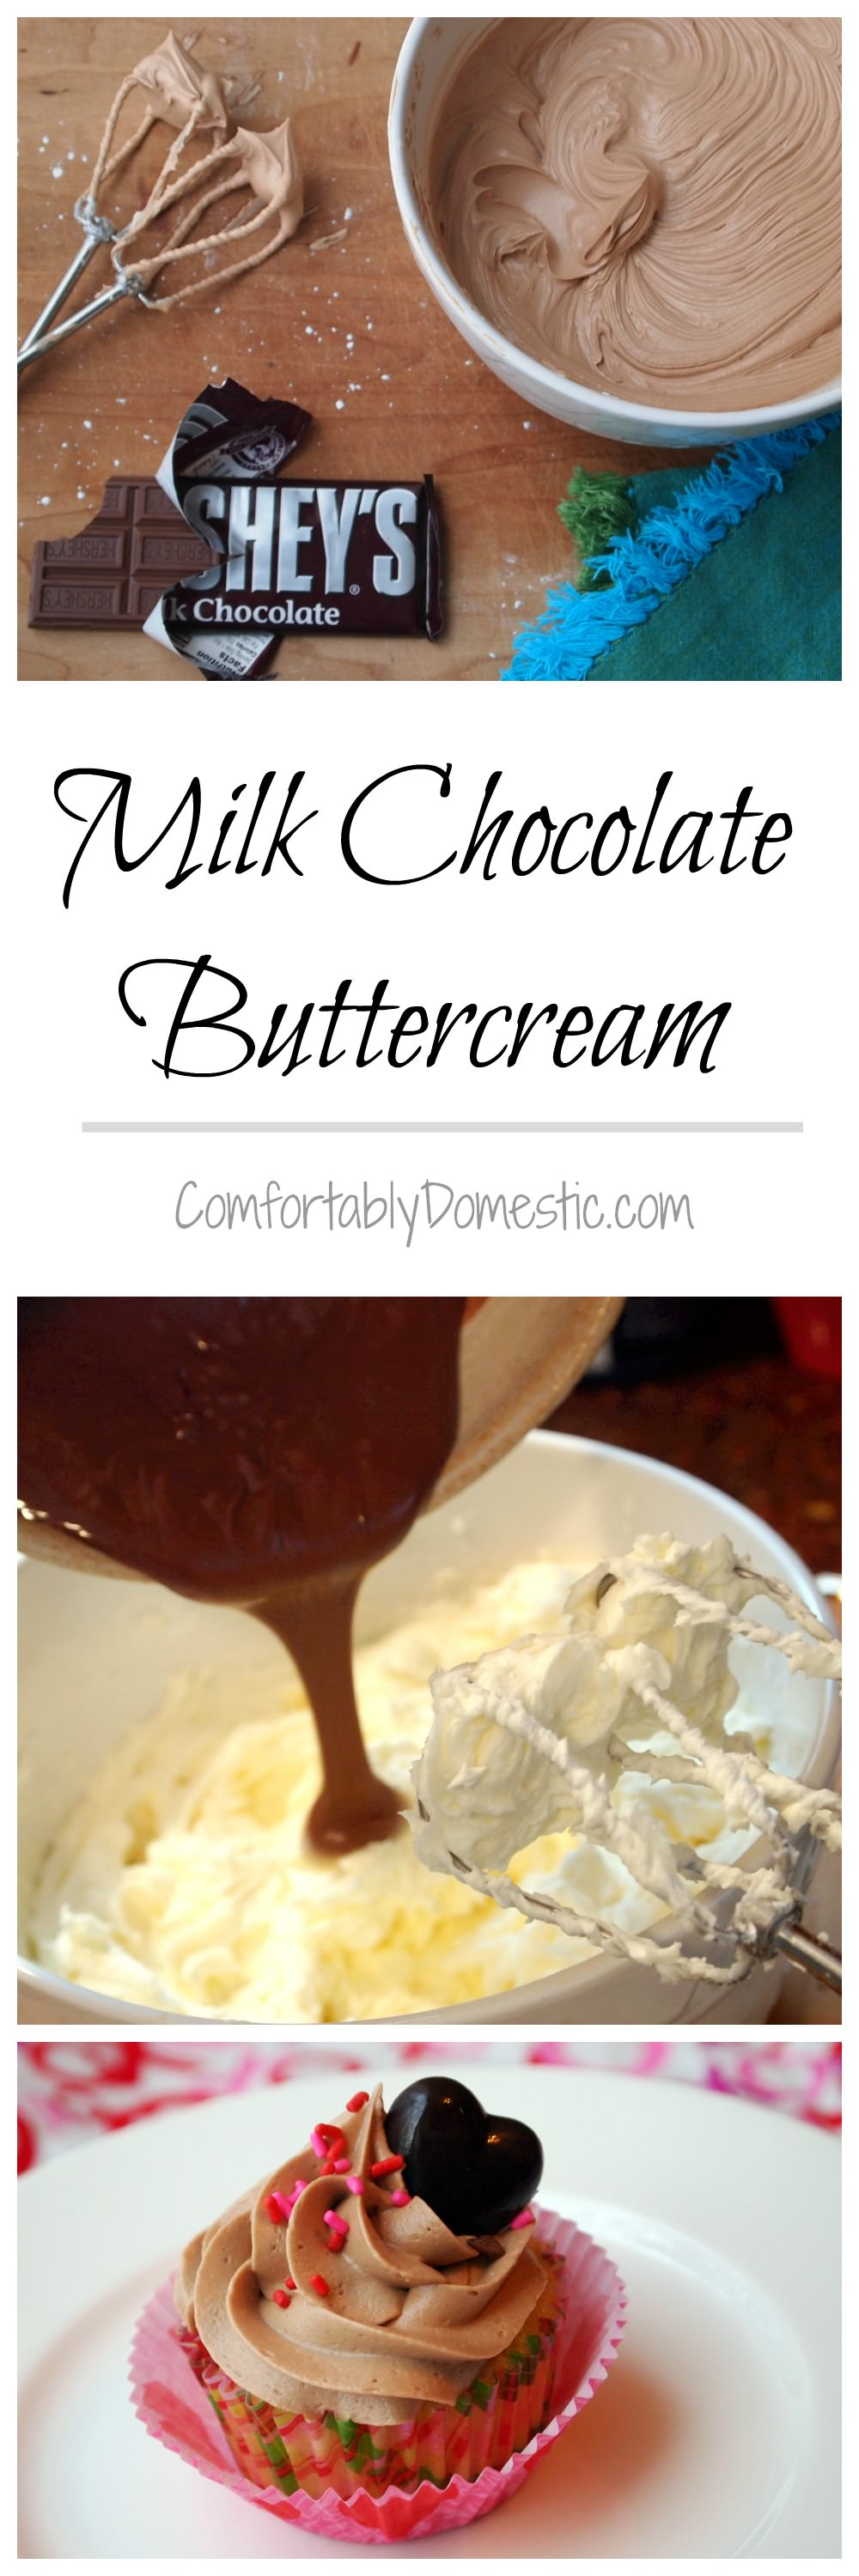 Milk Chocolate Buttercream Frosting Recipe - So good, you might want to eat it straight from the spoon! \\ Recipe on ComfortablyDomestic.com